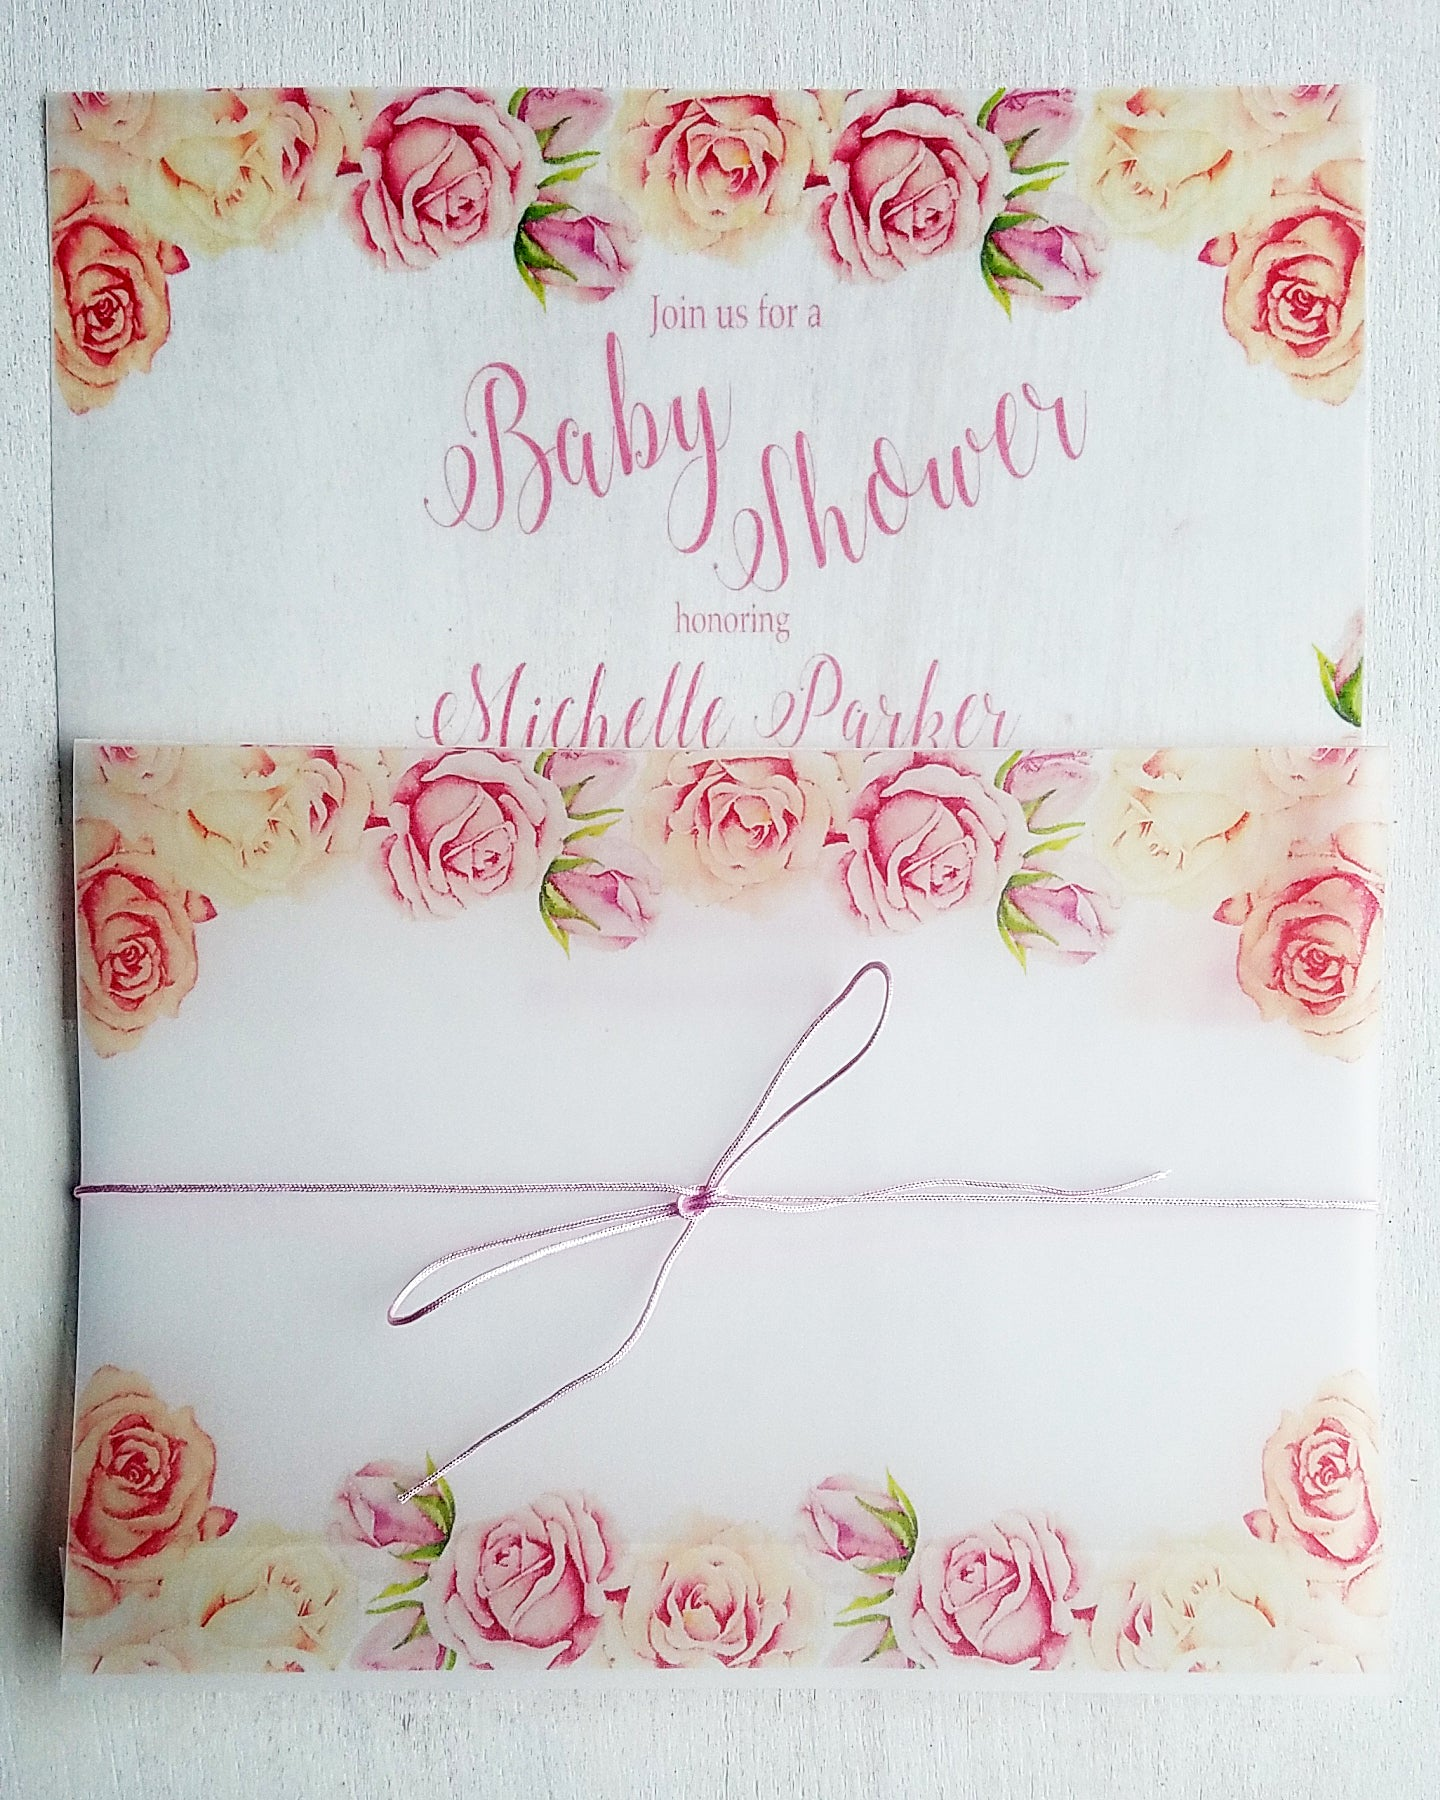 Blush Pink Peach Floral Baby Shower Invitations - Kaela Party Craft